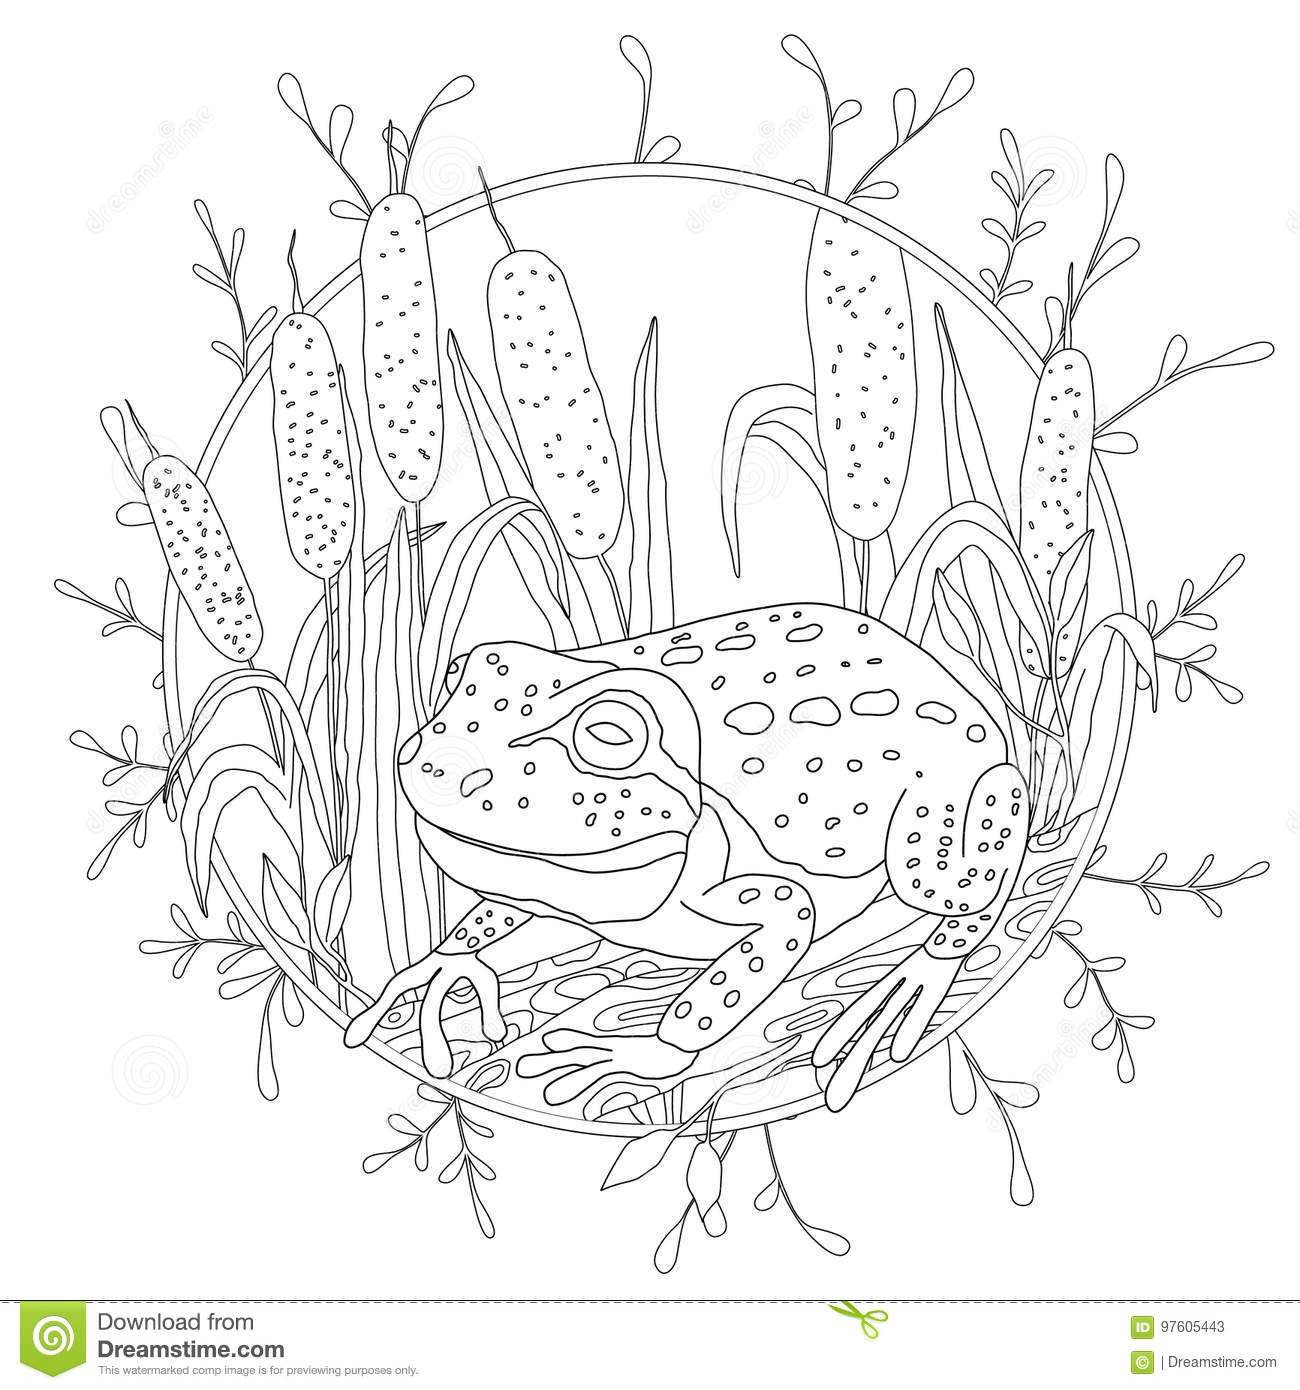 Download A Stylized Frog Sits Among The Reeds Sketch For Adult Anti Stress Coloring